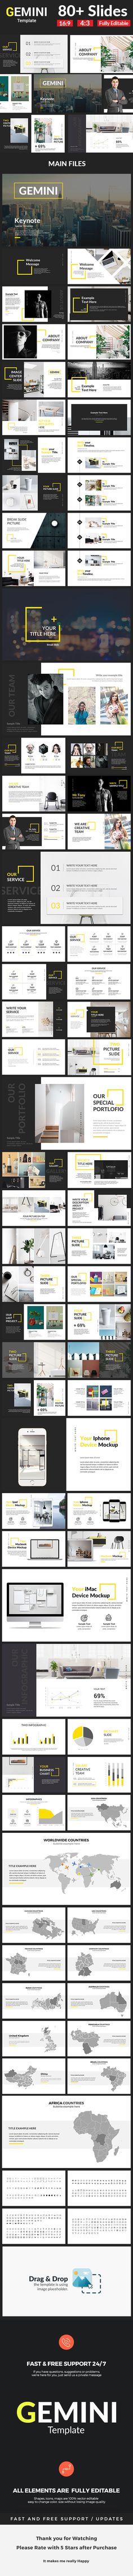 Gemini Creative Keynote Template Creative Keynote Templates - Keynote - Ideas of Keynote - Gemini Creative Keynote Template Creative Keynote Templates Graphisches Design, Slide Design, Layout Design, Layout Template, Keynote Template, Layout Inspiration, Graphic Design Inspiration, Presentation Layout, Creative Powerpoint Templates